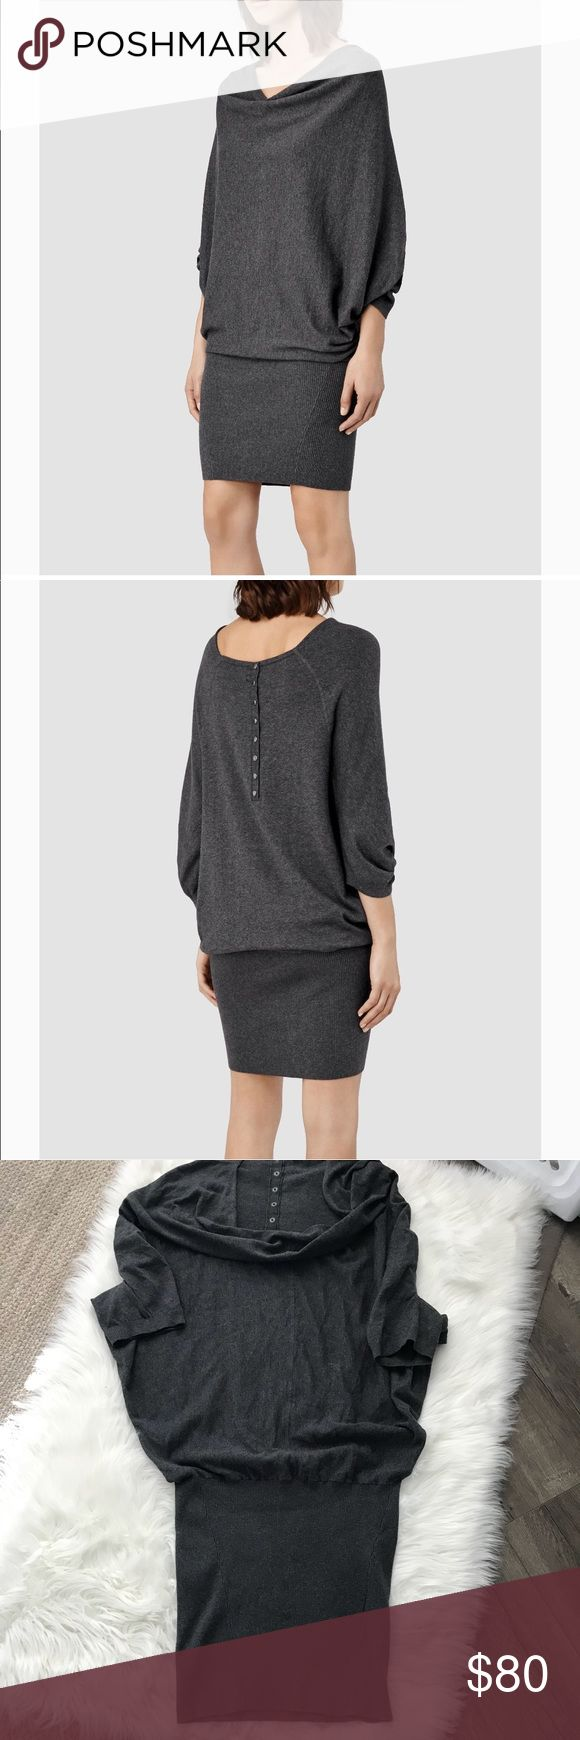 ✔️ NWT All Saints Elgar Gray Sweater Dress - Sz 10 Gorgeous NWT All Saints Elgar Sweater Dress. Size 10. This dress is stunning but unfortunately does not fit me 😭.  100% Cotton and oh so luxurious. ✔️ Lowball offers will be declined and blocked. ✔️ No trades. Thank you. NOTE:  ✅The price tag is no longer attached. The tag shown in pics will be the only tag attached✅ All Saints Dresses